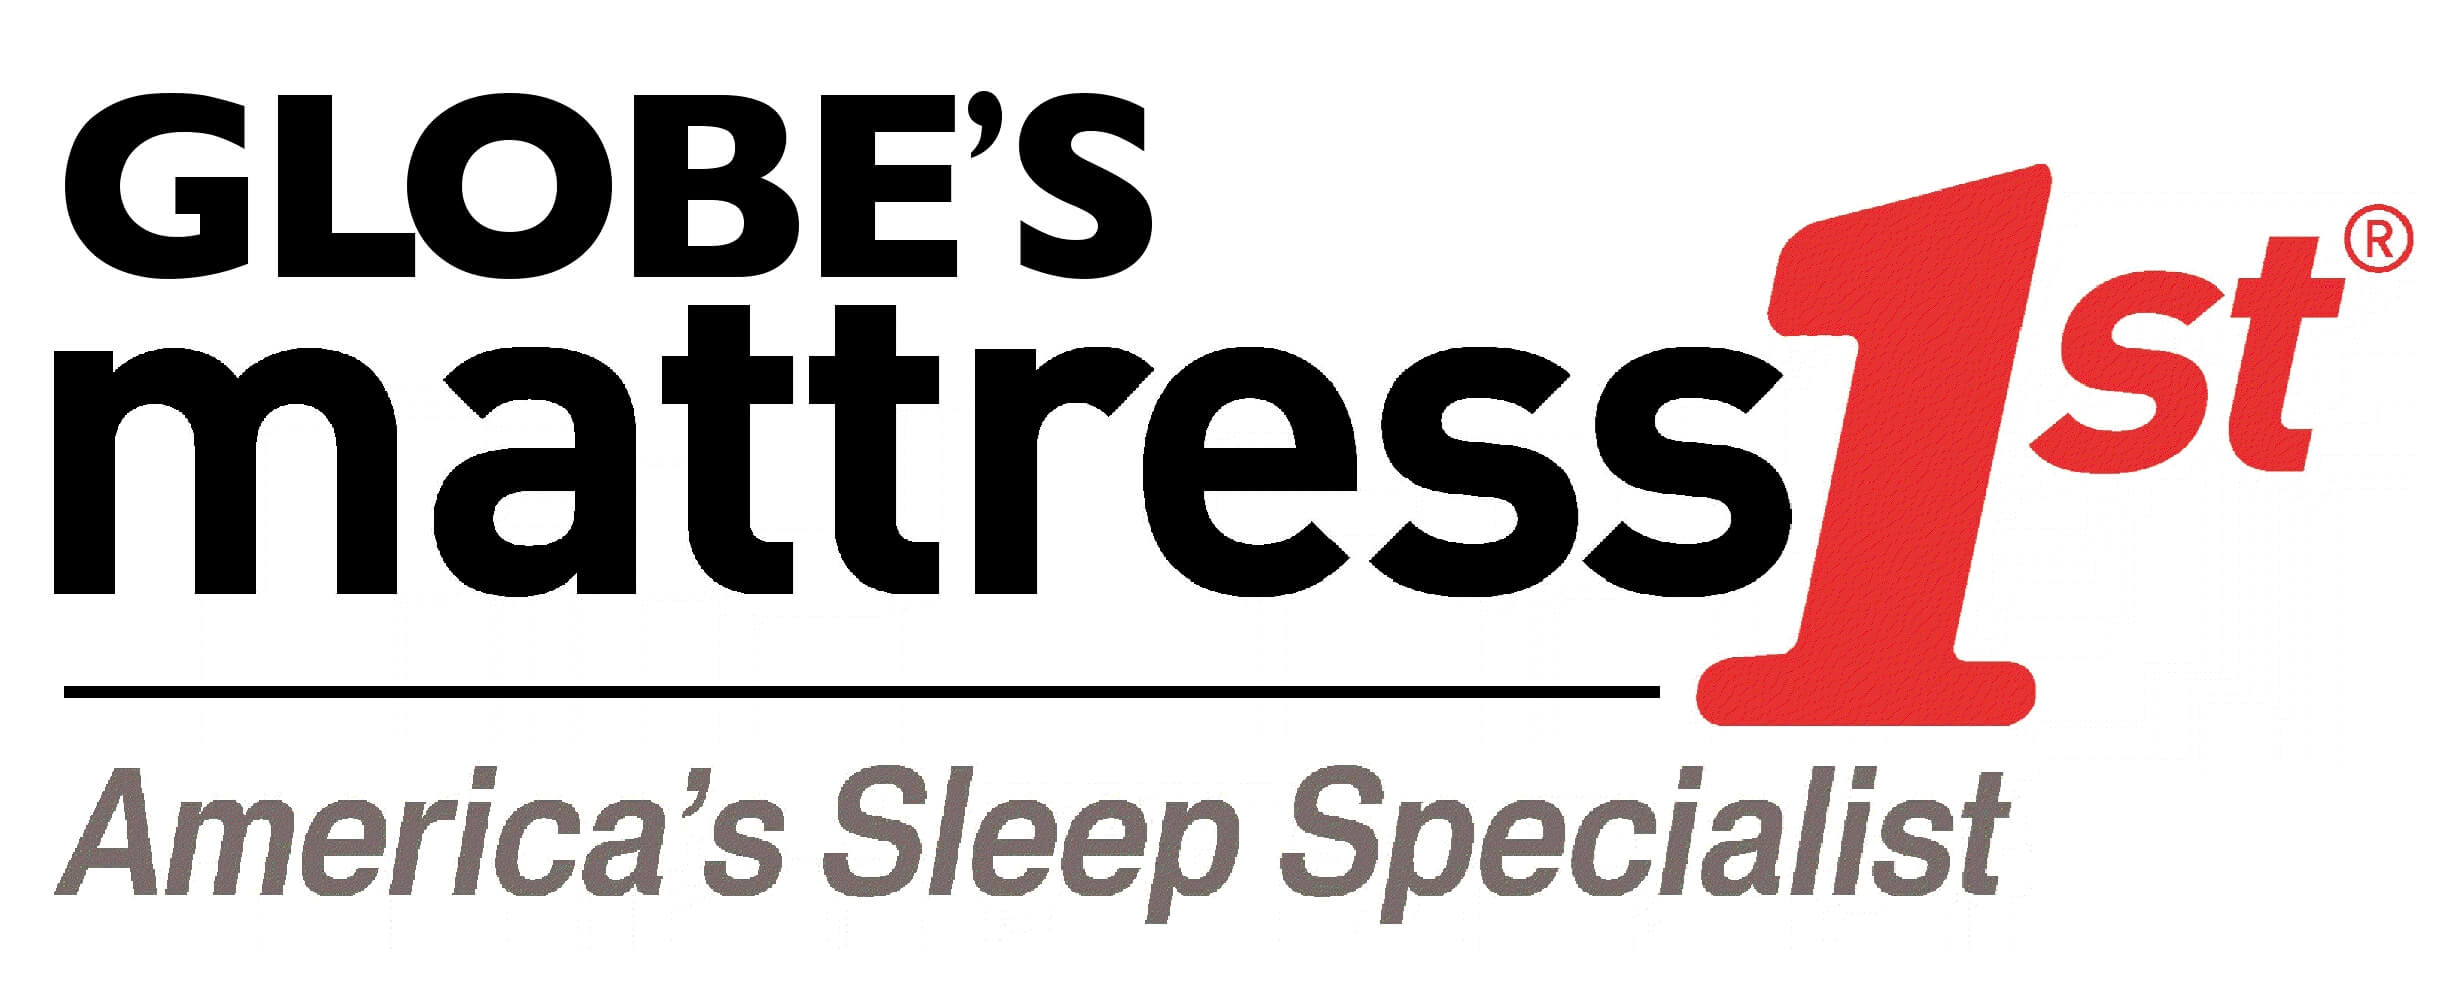 Globe's mattress 1st - America's sleep specialist